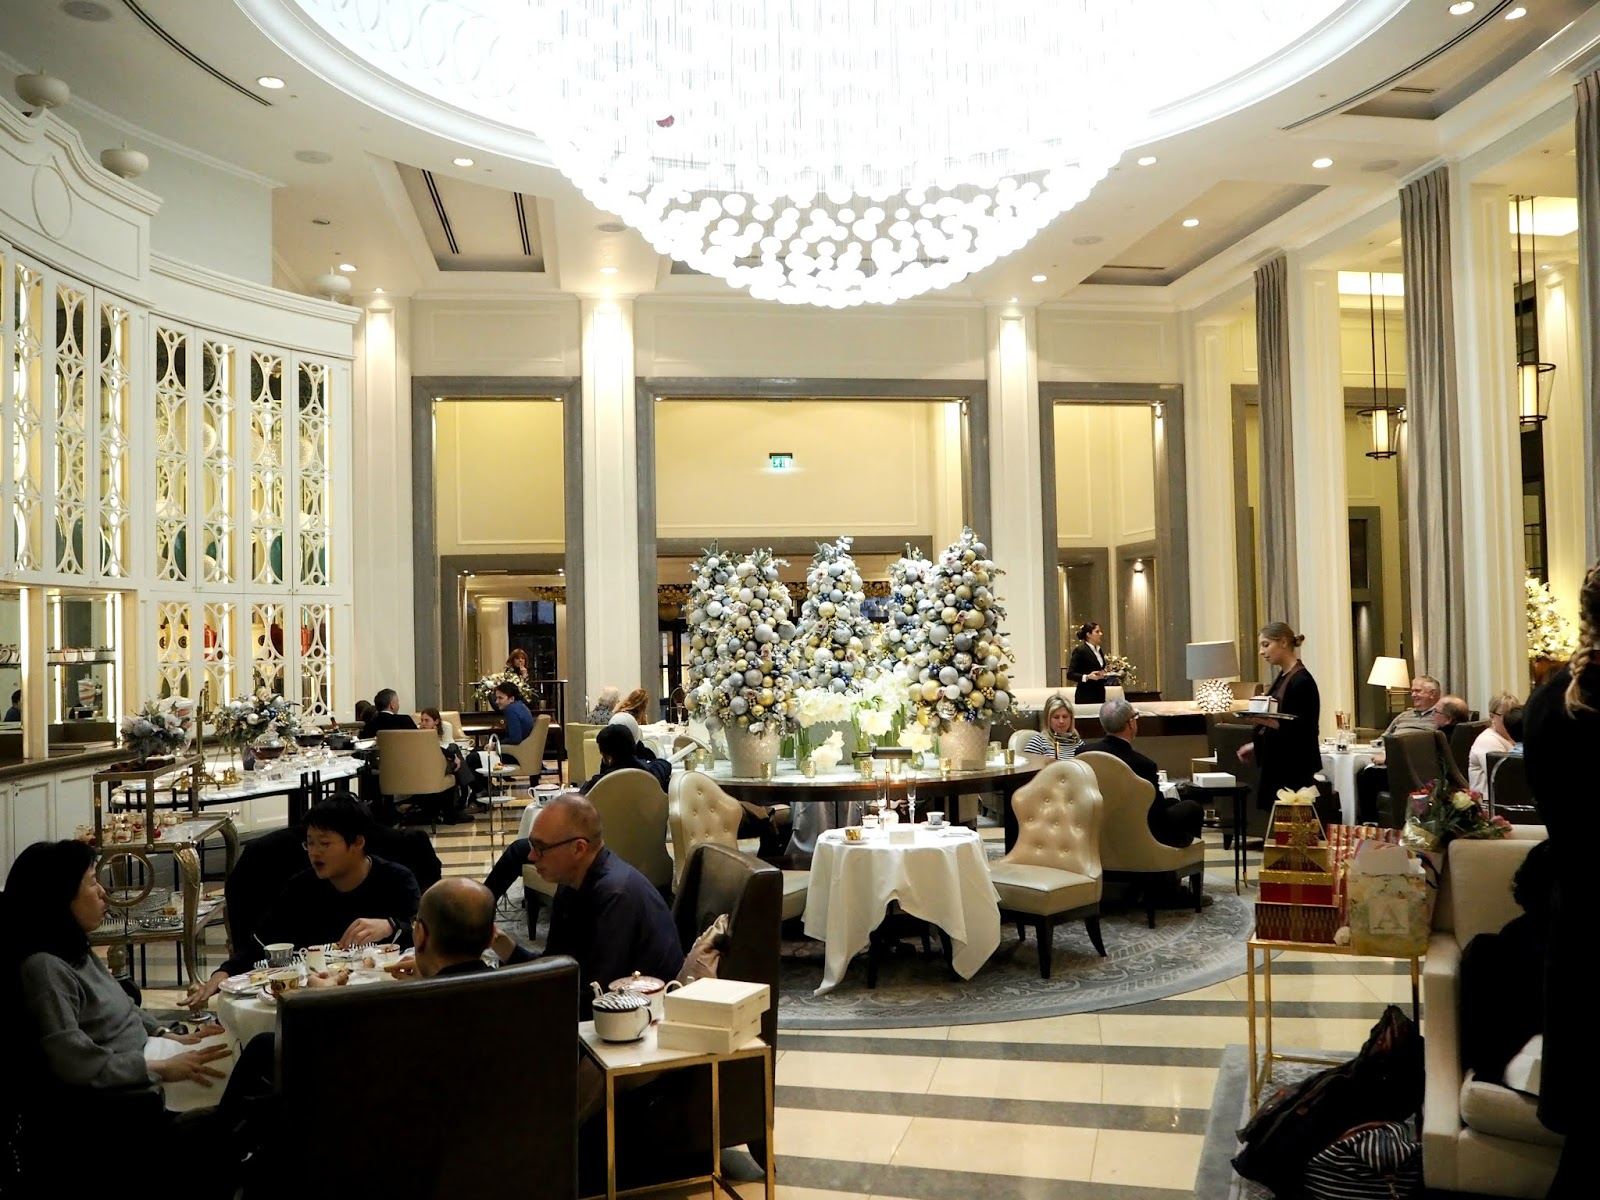 The Crystal Moon Lounge at The Corinthia London